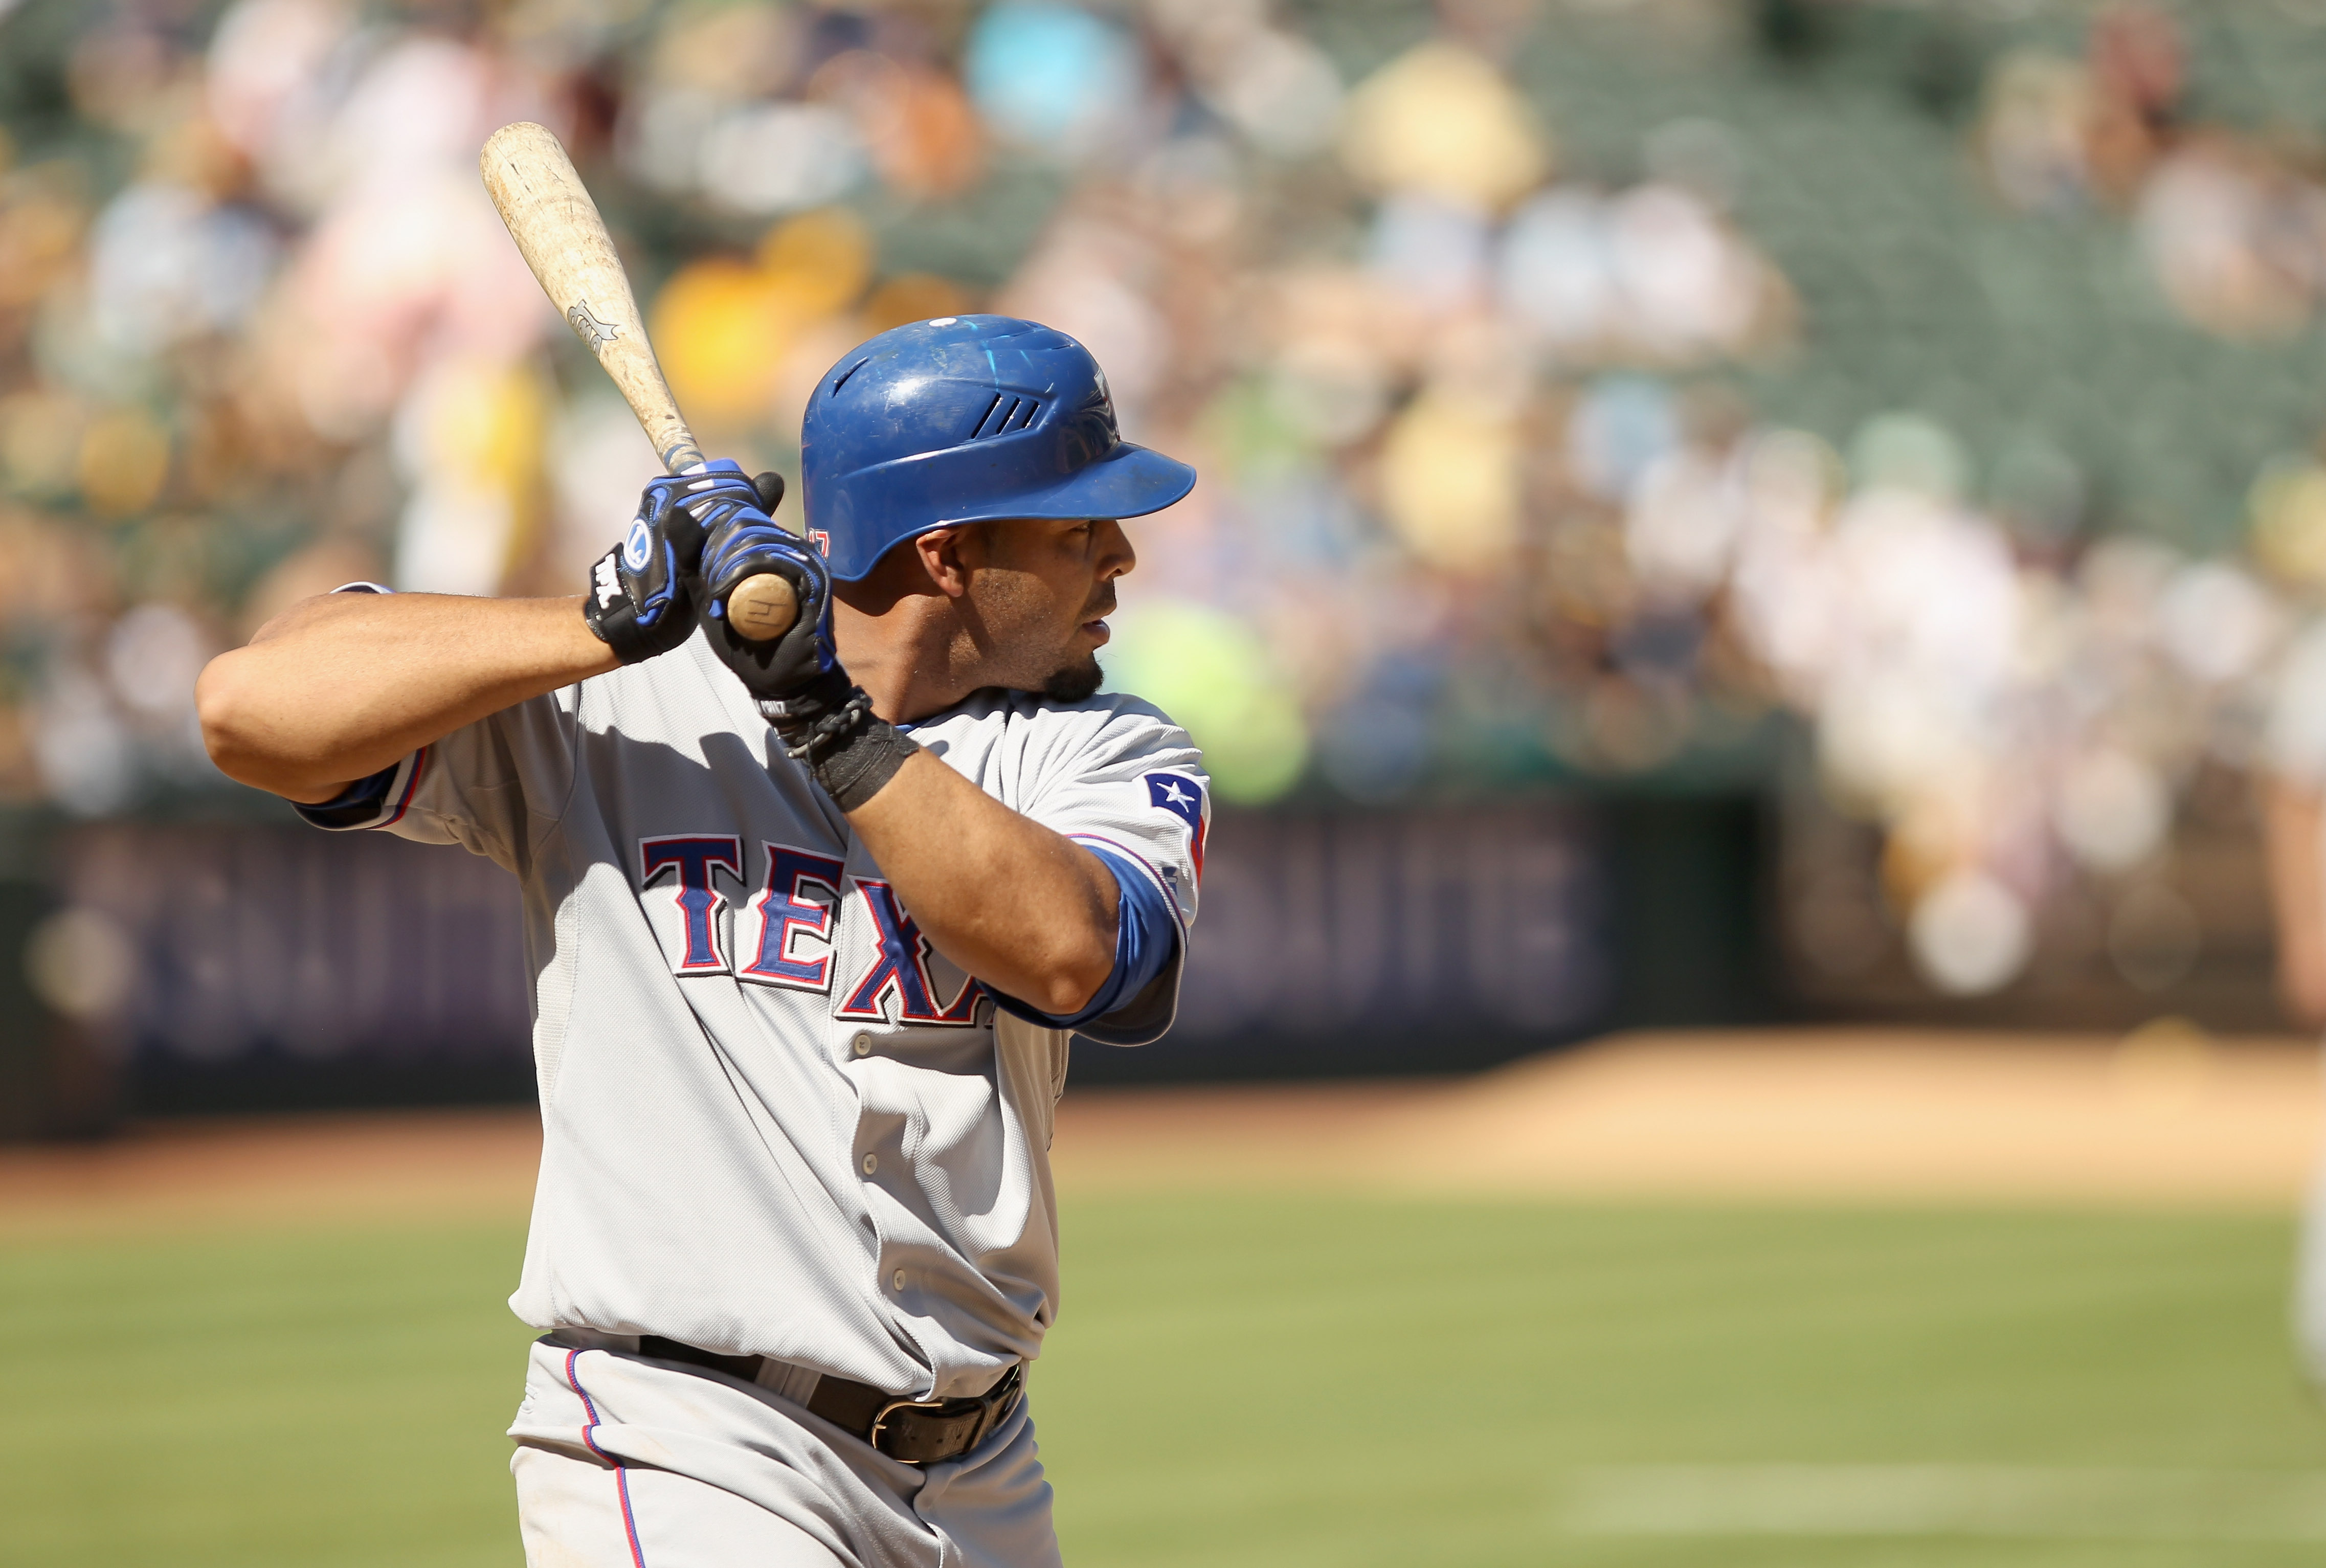 OAKLAND, CA - SEPTEMBER 25:  Nelson Cruz #17 of the Texas Rangers bats against the Oakland Athletics at the Oakland-Alameda County Coliseum on September 25, 2010 in Oakland, California.  (Photo by Ezra Shaw/Getty Images)